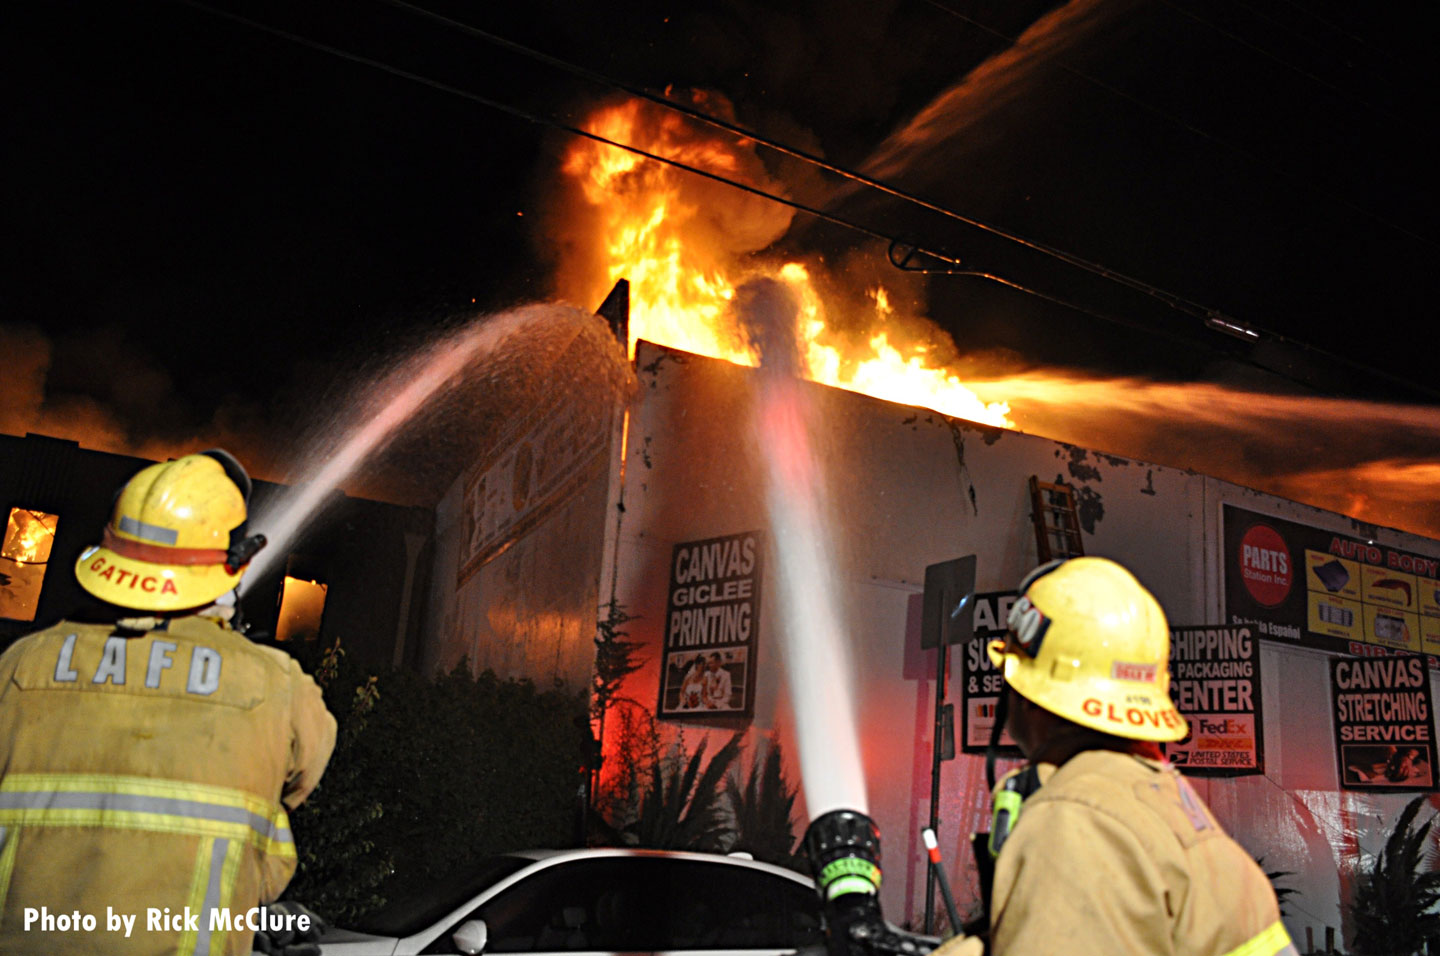 Los Angeles Fire Department firefighters aim hose streams on the fire.